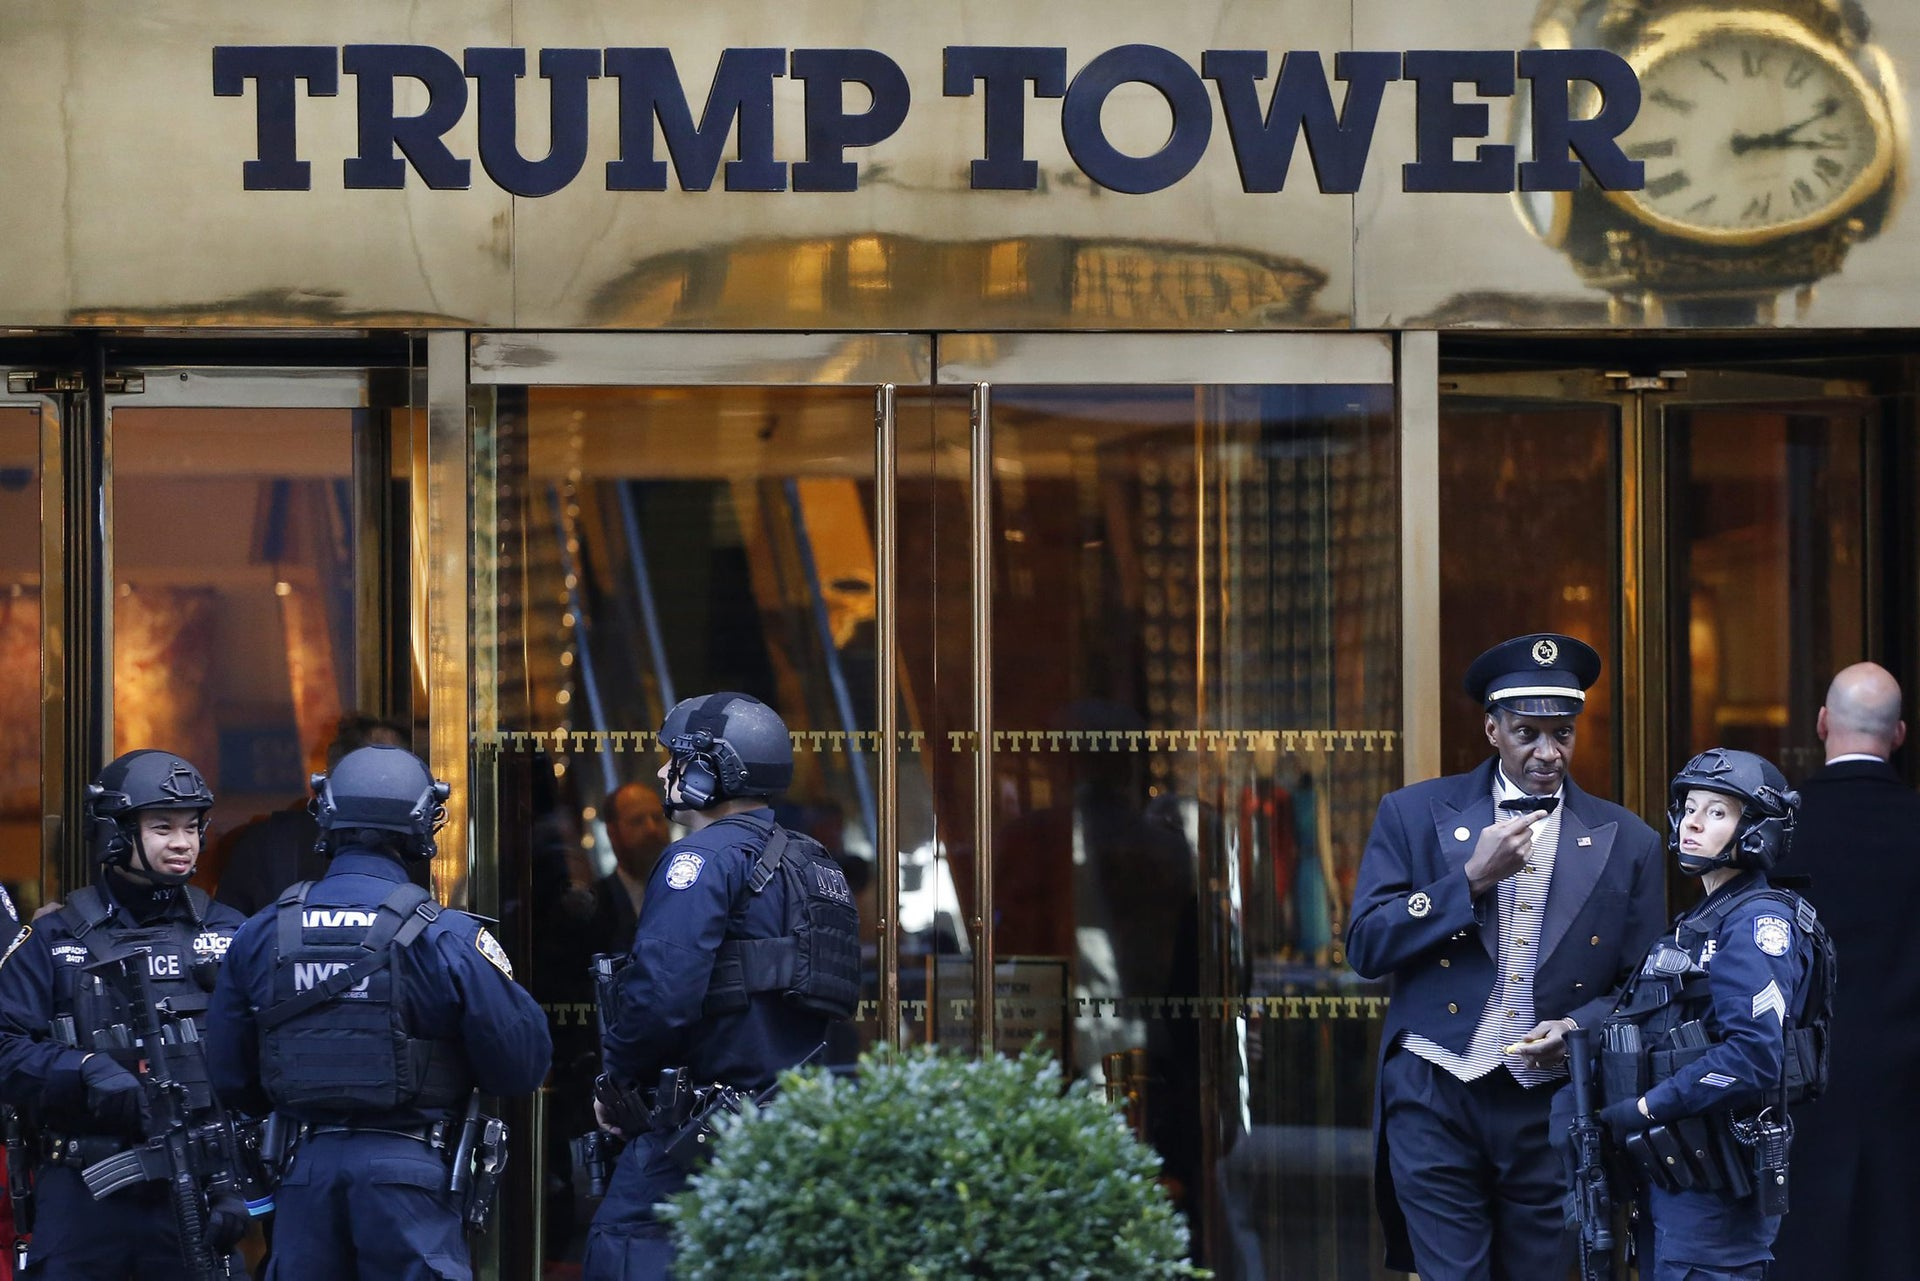 Members of the New York Police Department's counterterrorism unit guard Trump Tower, Monday, Nov. 14, 2016. President-elect Donald Trump is making an overture to warring Republican circles by appointing GOP chief Reince Priebus as his White House chief of staff and Breitbart News executive Stephen Bannon as chief strategist and senior counselor.